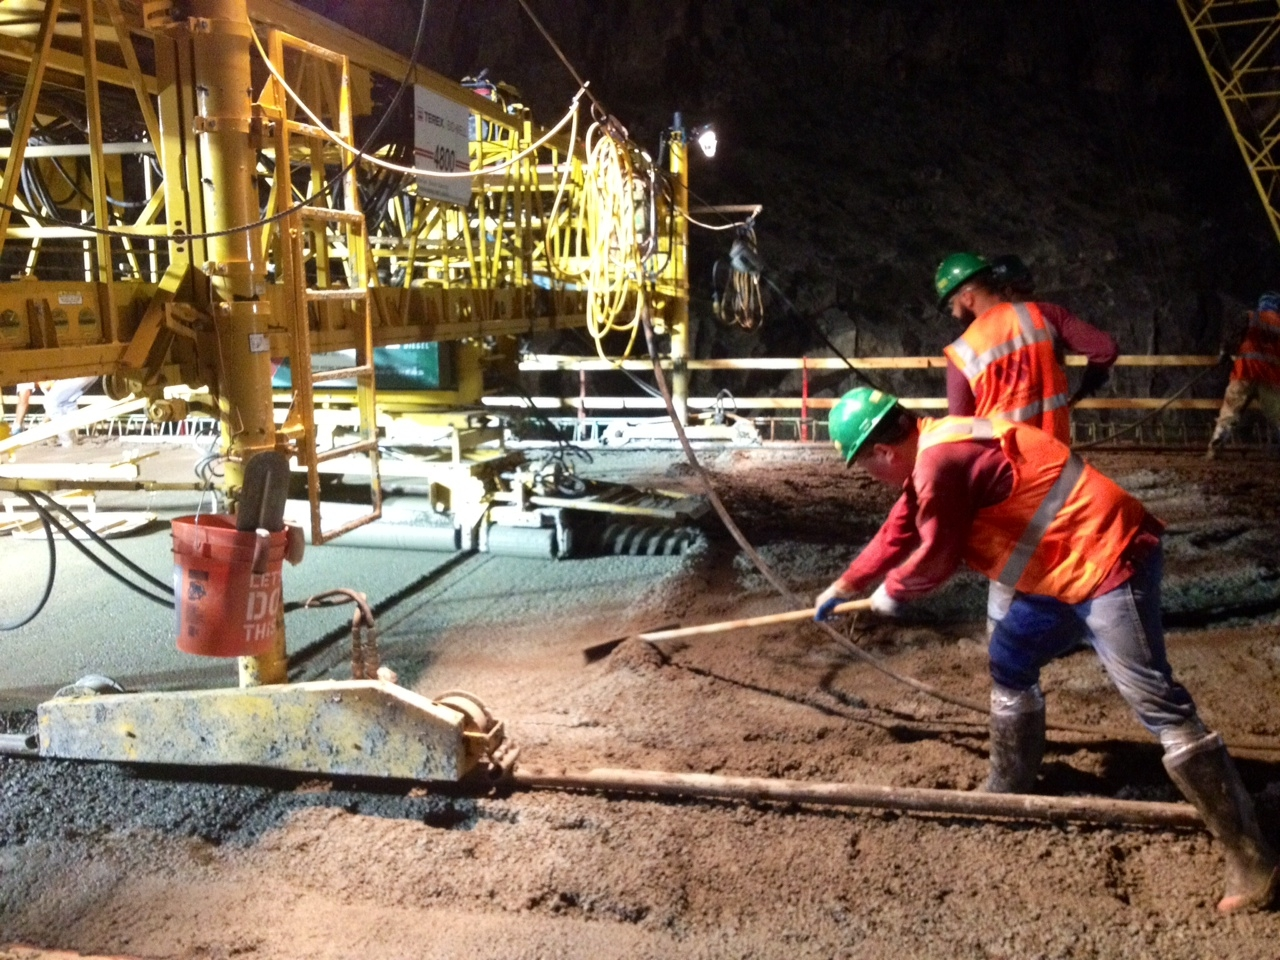 ADOT crews pour concrete for the reconstructed NB Bridge No. 6 on I-15 in the Virgin River Gorge, Mohave County, Arizona, June 1-2, 2015   Photo courtesy of ADOT, St. George News